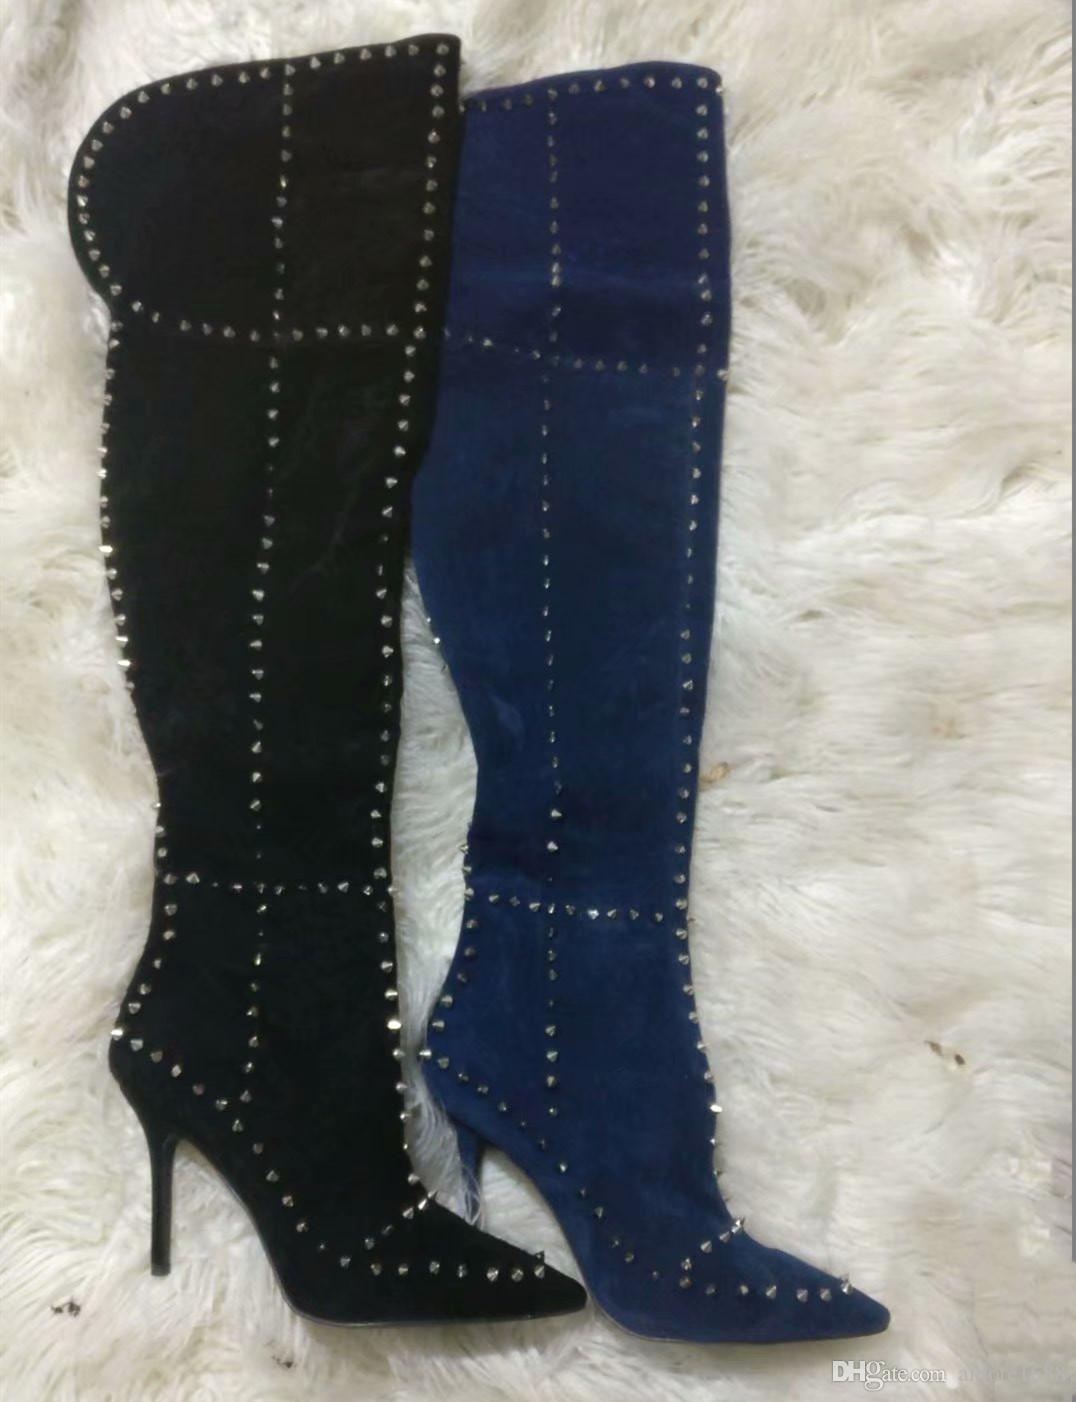 ca414c7bfb7 Sexy Spikes Women Thigh High Boots Pointed Toe Suede Over The Knee Boots  Female Stiletto High Heels Pumps Rivets Bottines Casual Party Shoes Shoes  Online ...